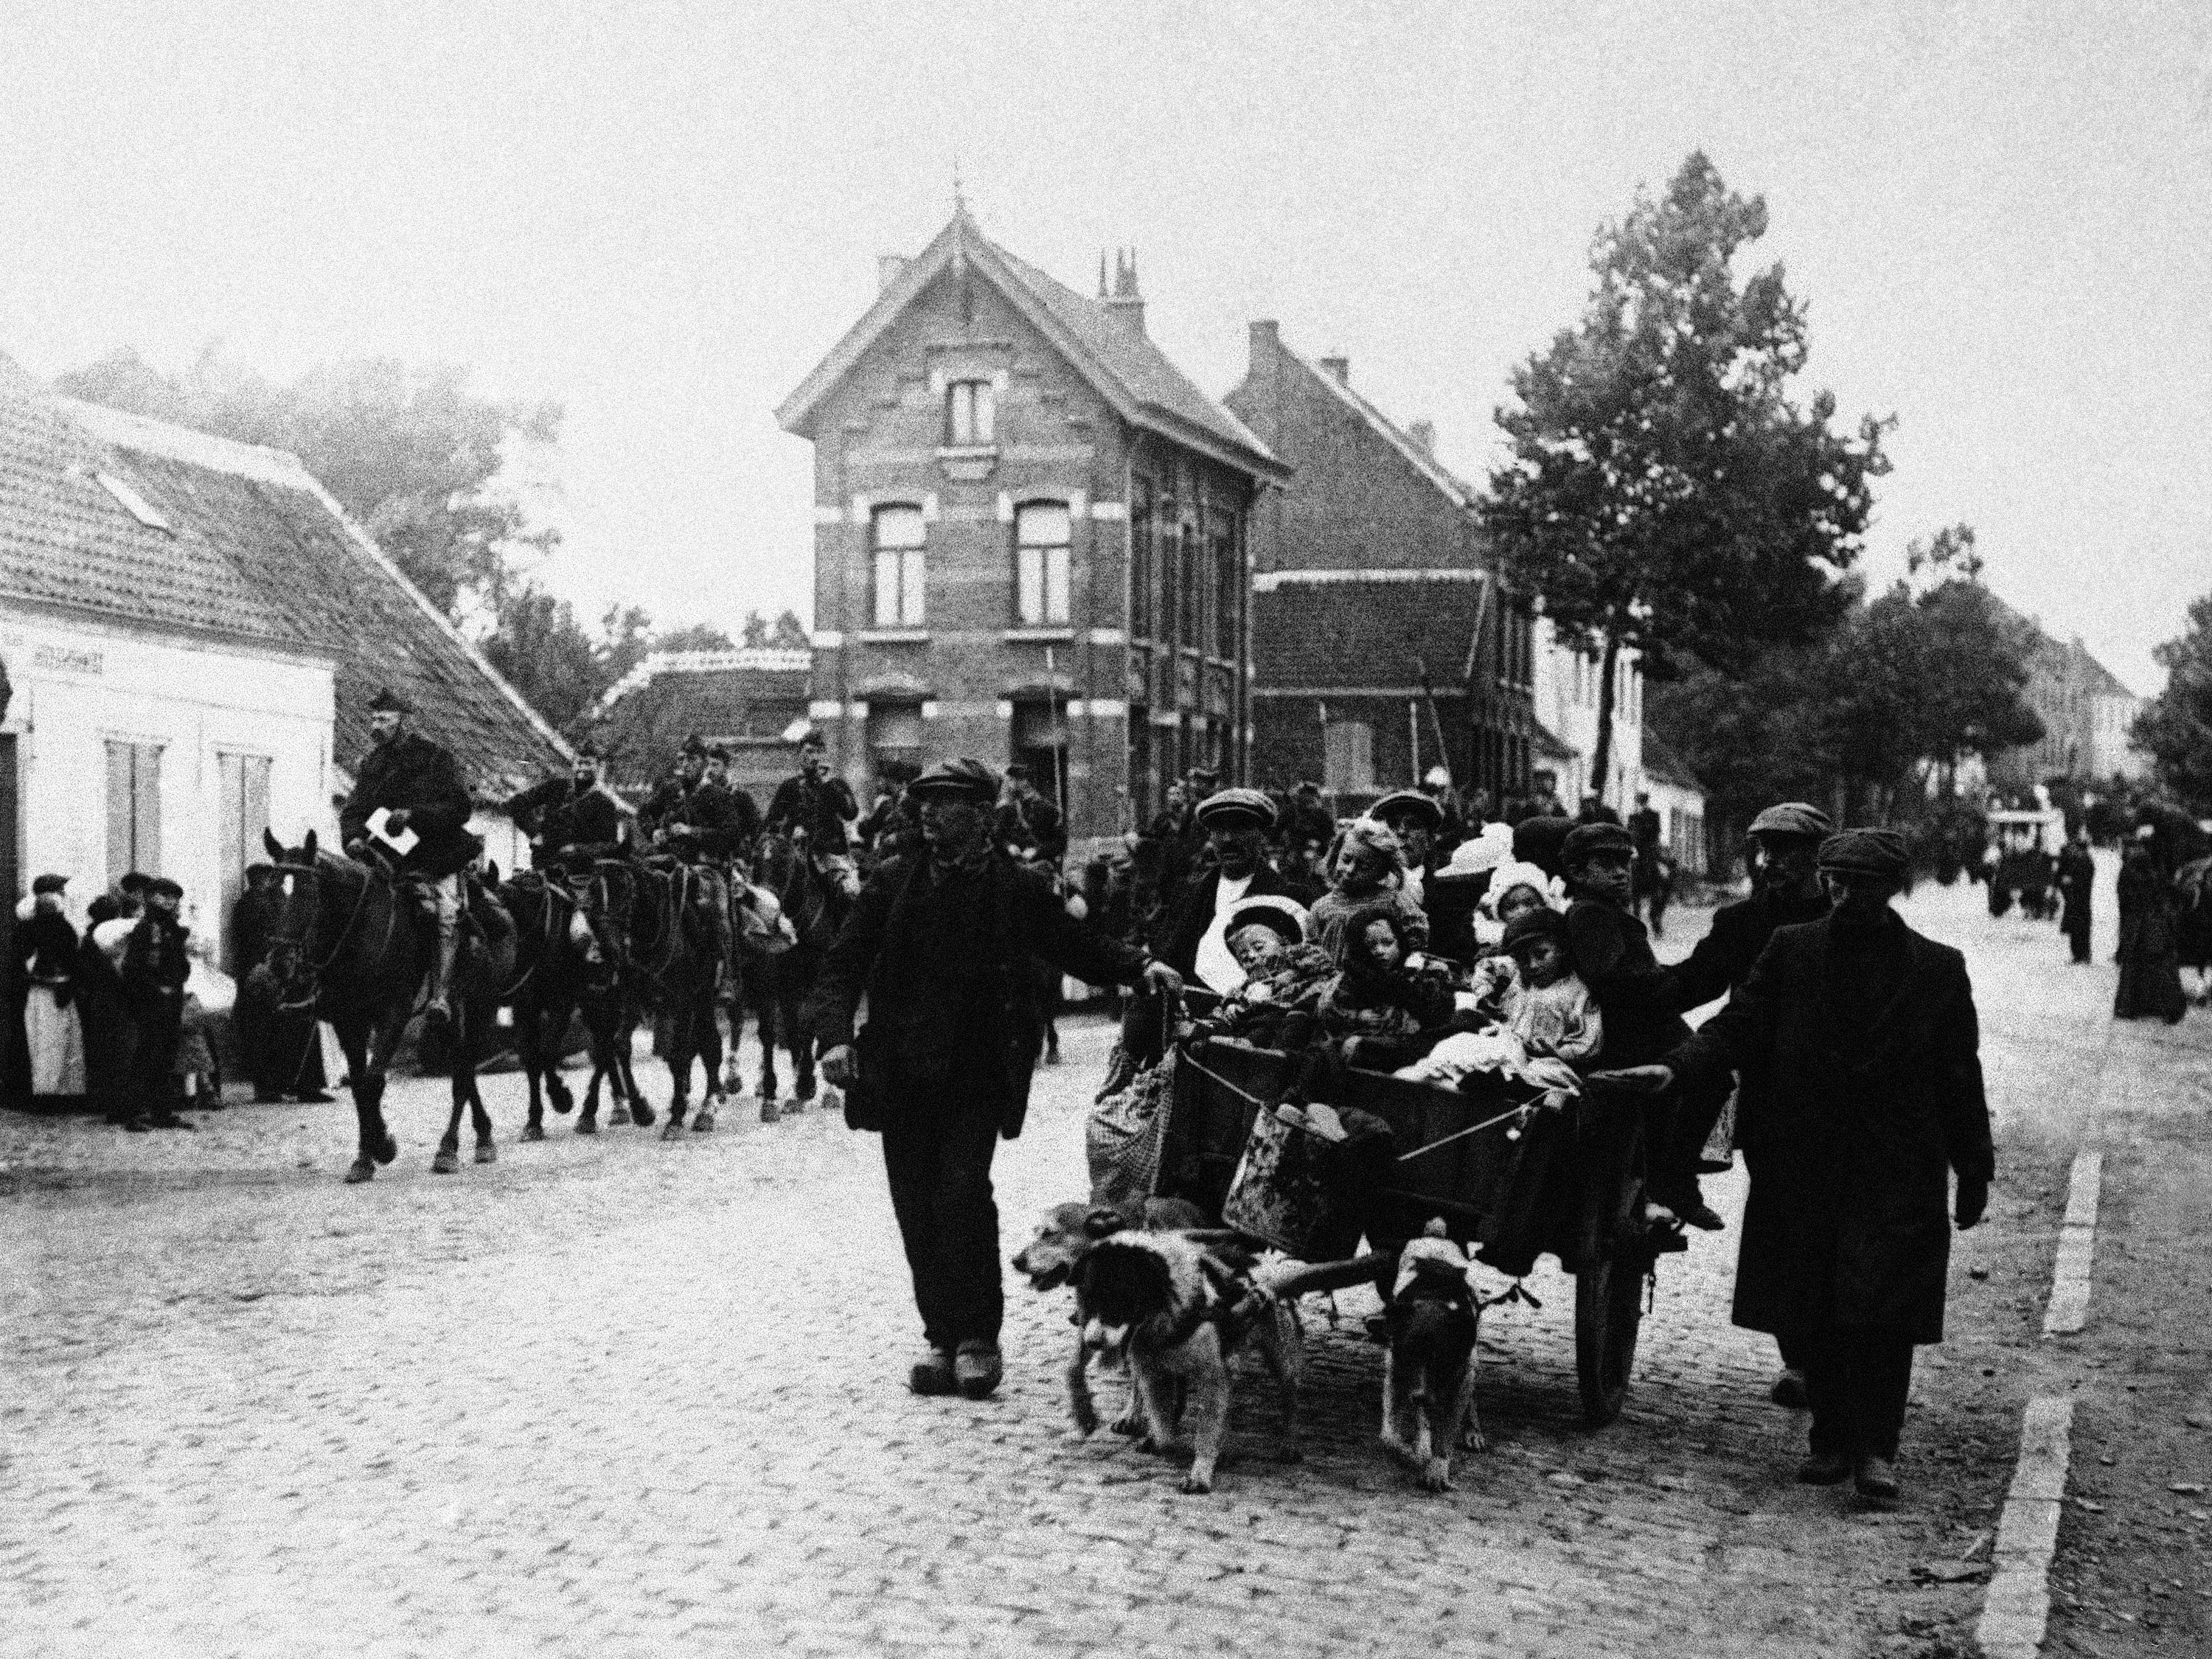 In this Oct. 14, 1914, photo, Belgian civilians and a cavalry detail move out of the pathway of the German advance during World War I in Antwerp.